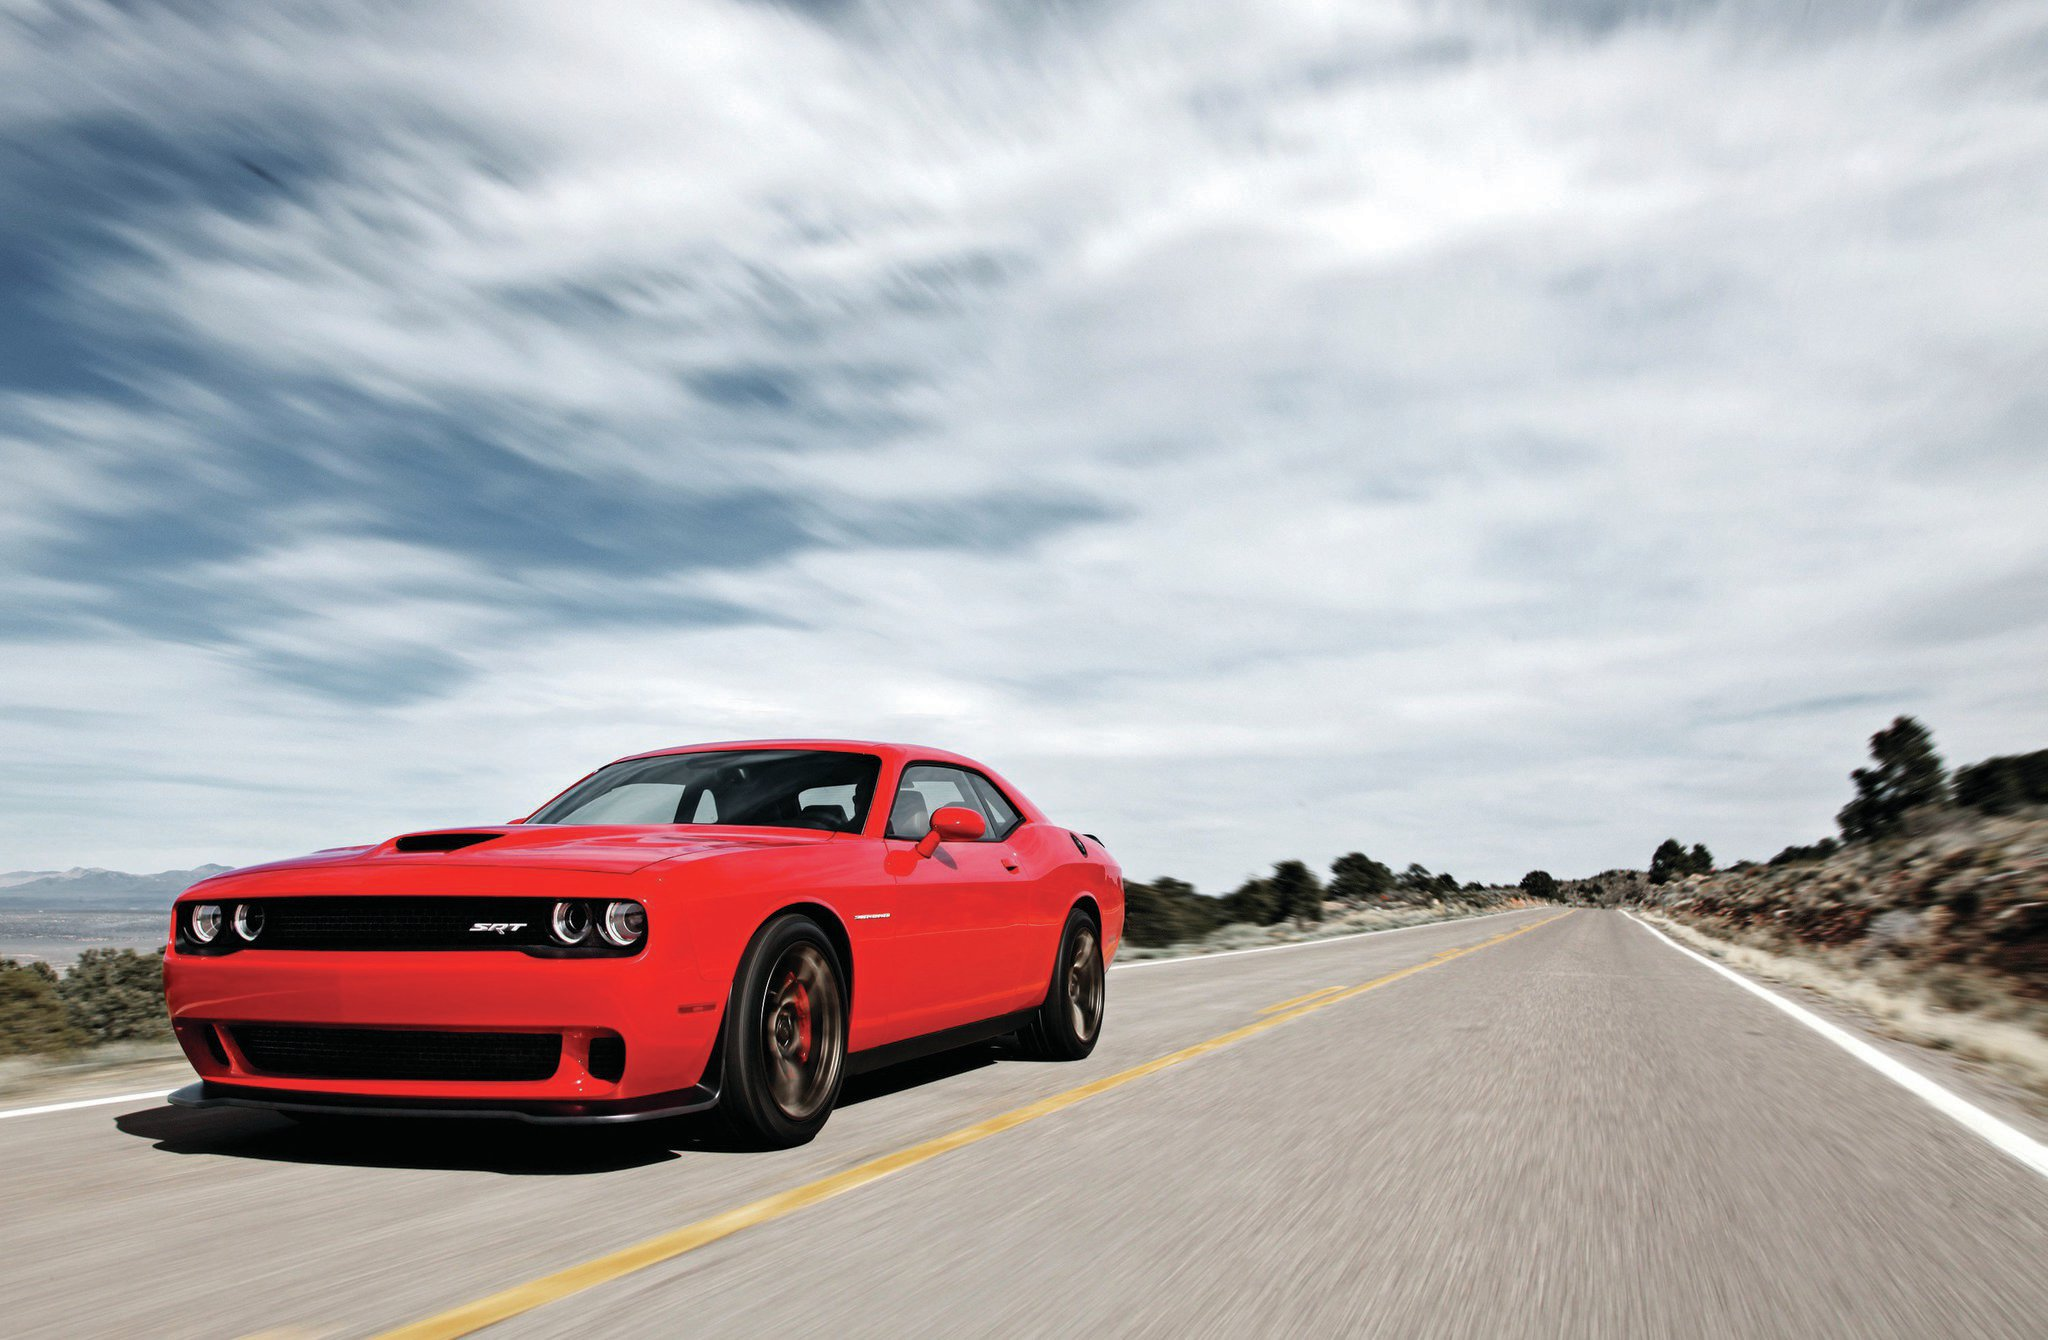 2015 Dodge Challenger Hellcat Front Three Quarter